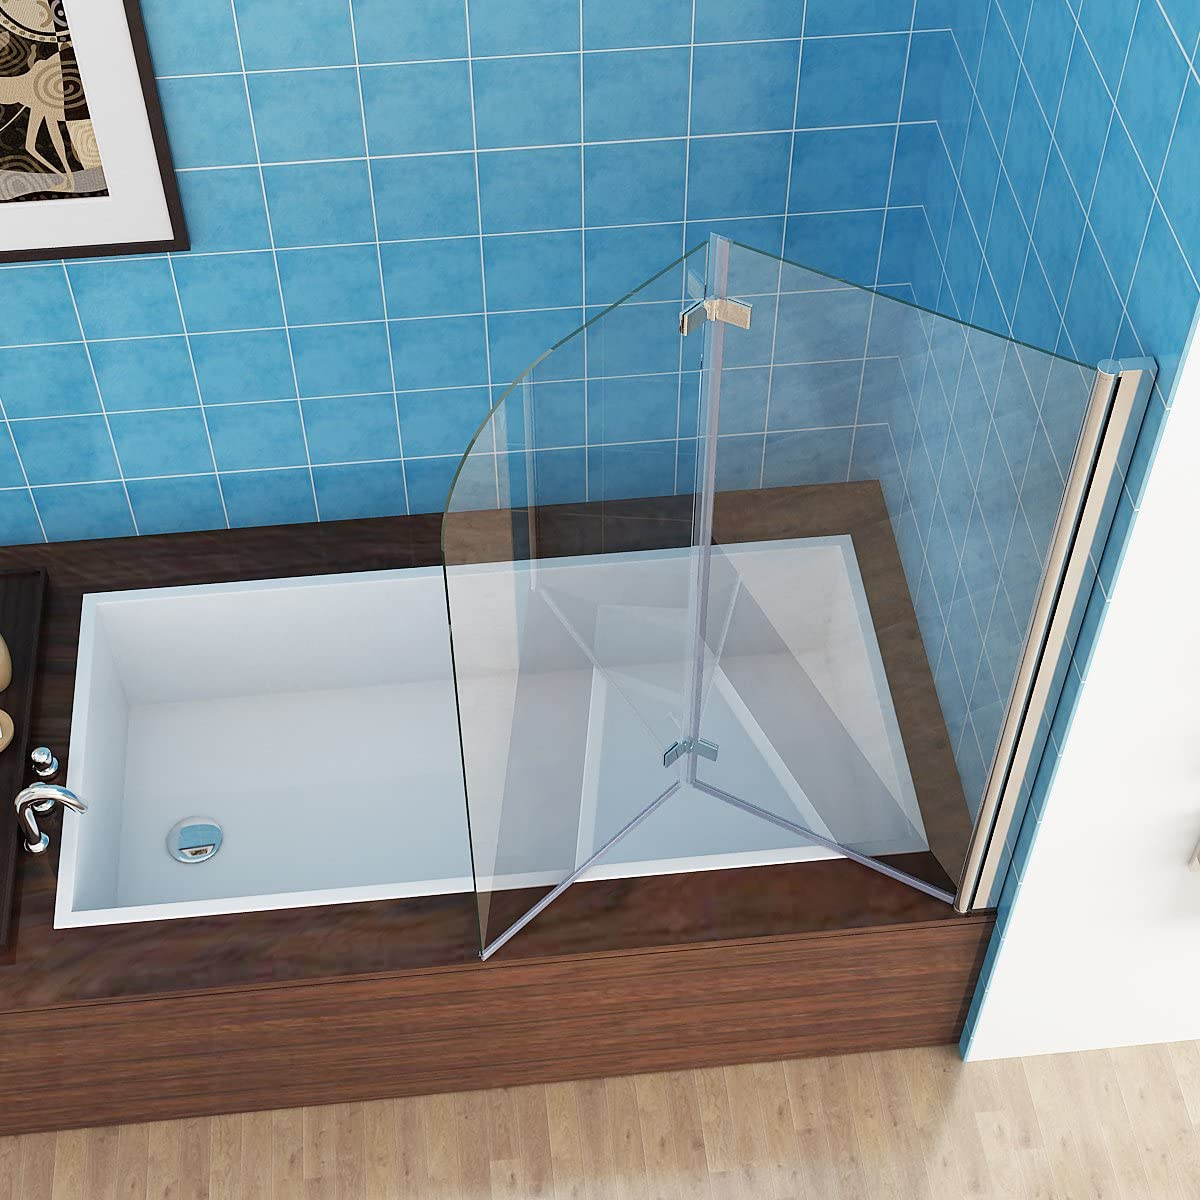 MIQU 1200 x 1400 mm Shower Screen 2 Folding Bath Screen 180° Hinge Door Fold Panel 6mm Easy Clean Glass